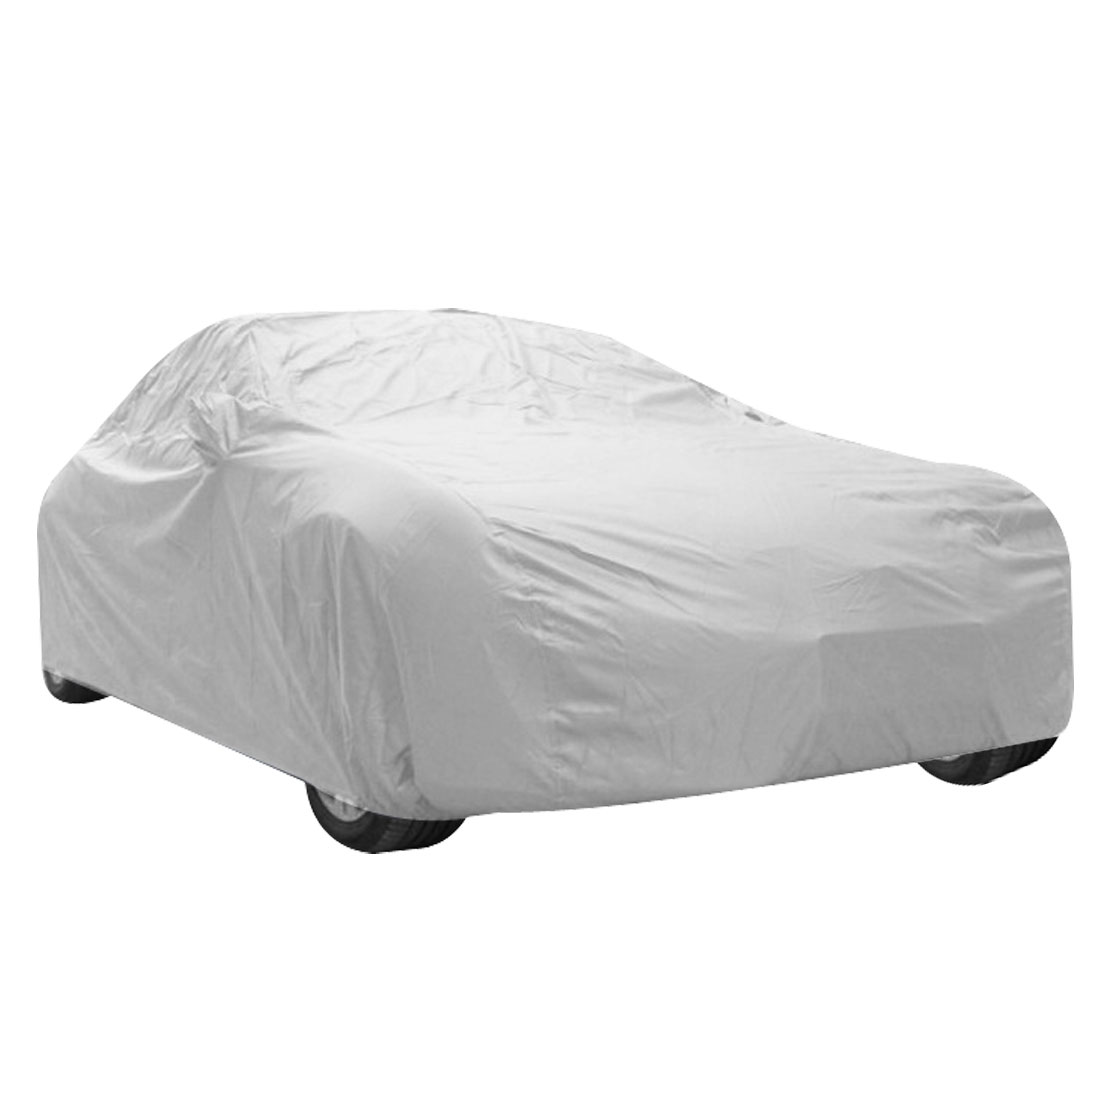 Outdoor Anti Dust Rain Snow Silver Tone Saloon Sedan Car Cover for Audi A6L A8